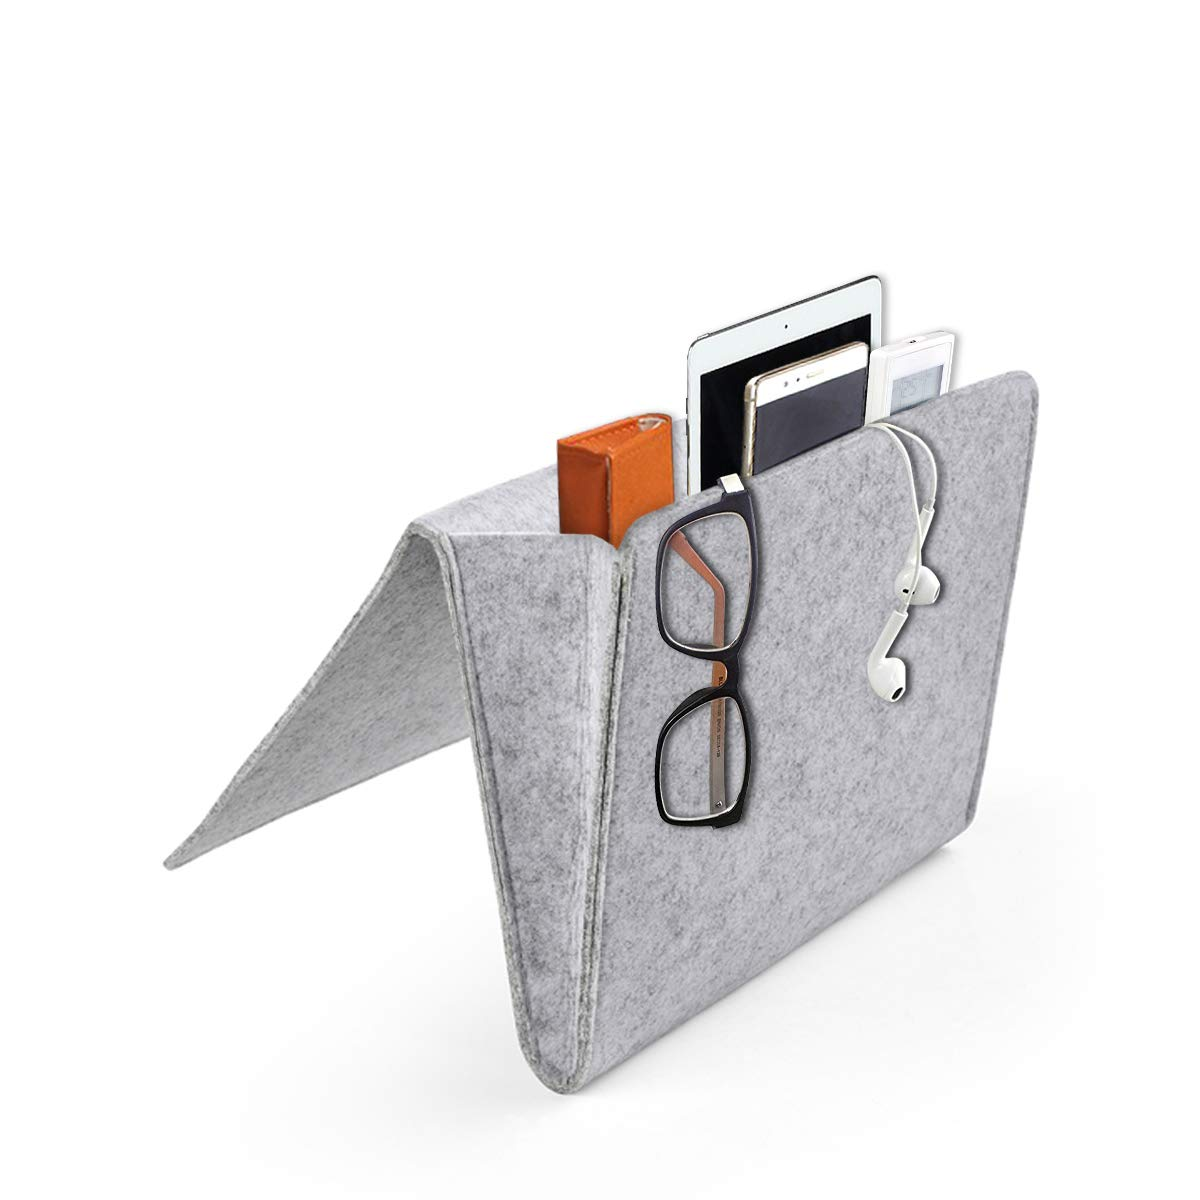 Daite 0.2 Inches Thick Felt Bedside Caddy Pocket, Inside with 2 Small Pockets for Organizing Phone, Remote, Magzine, Glasses and Pen (Light Grey) Winstar Electronics Tech co. ltd